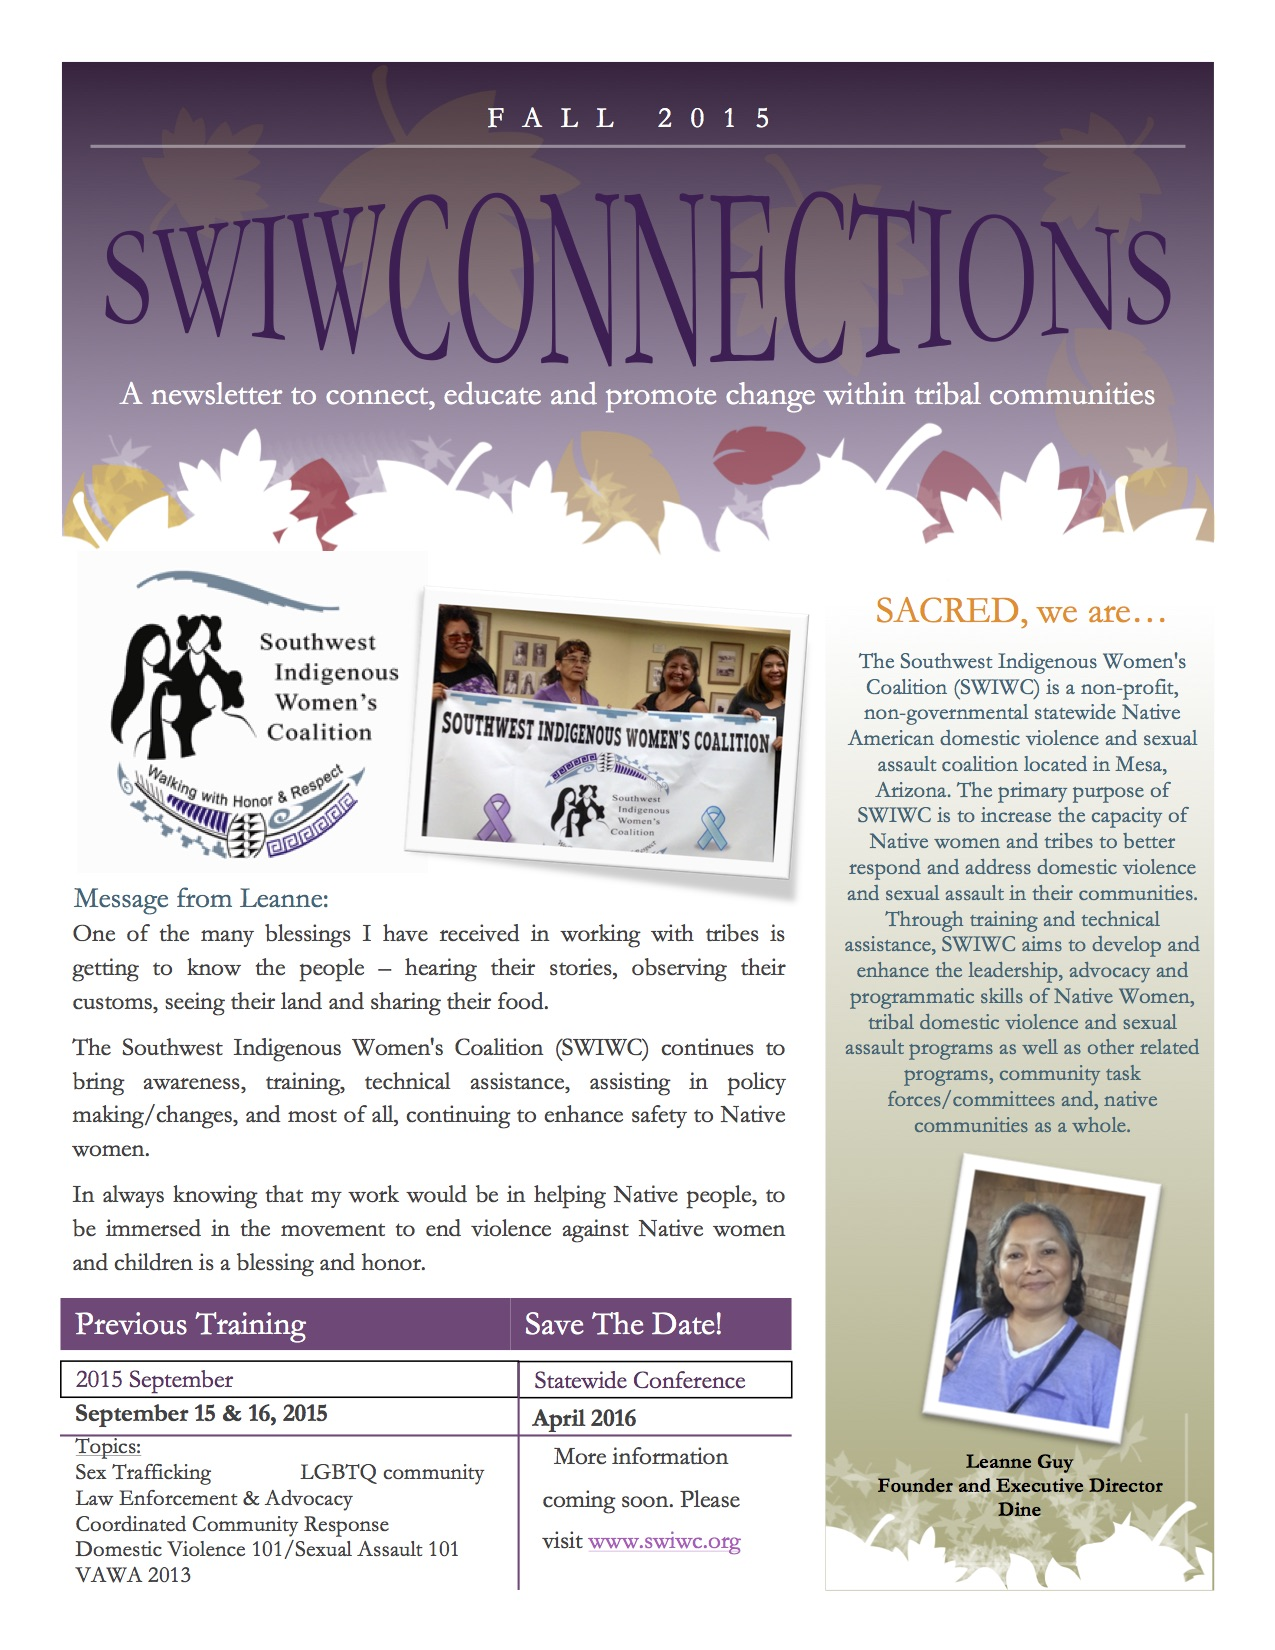 SWIWConnectionsFall15